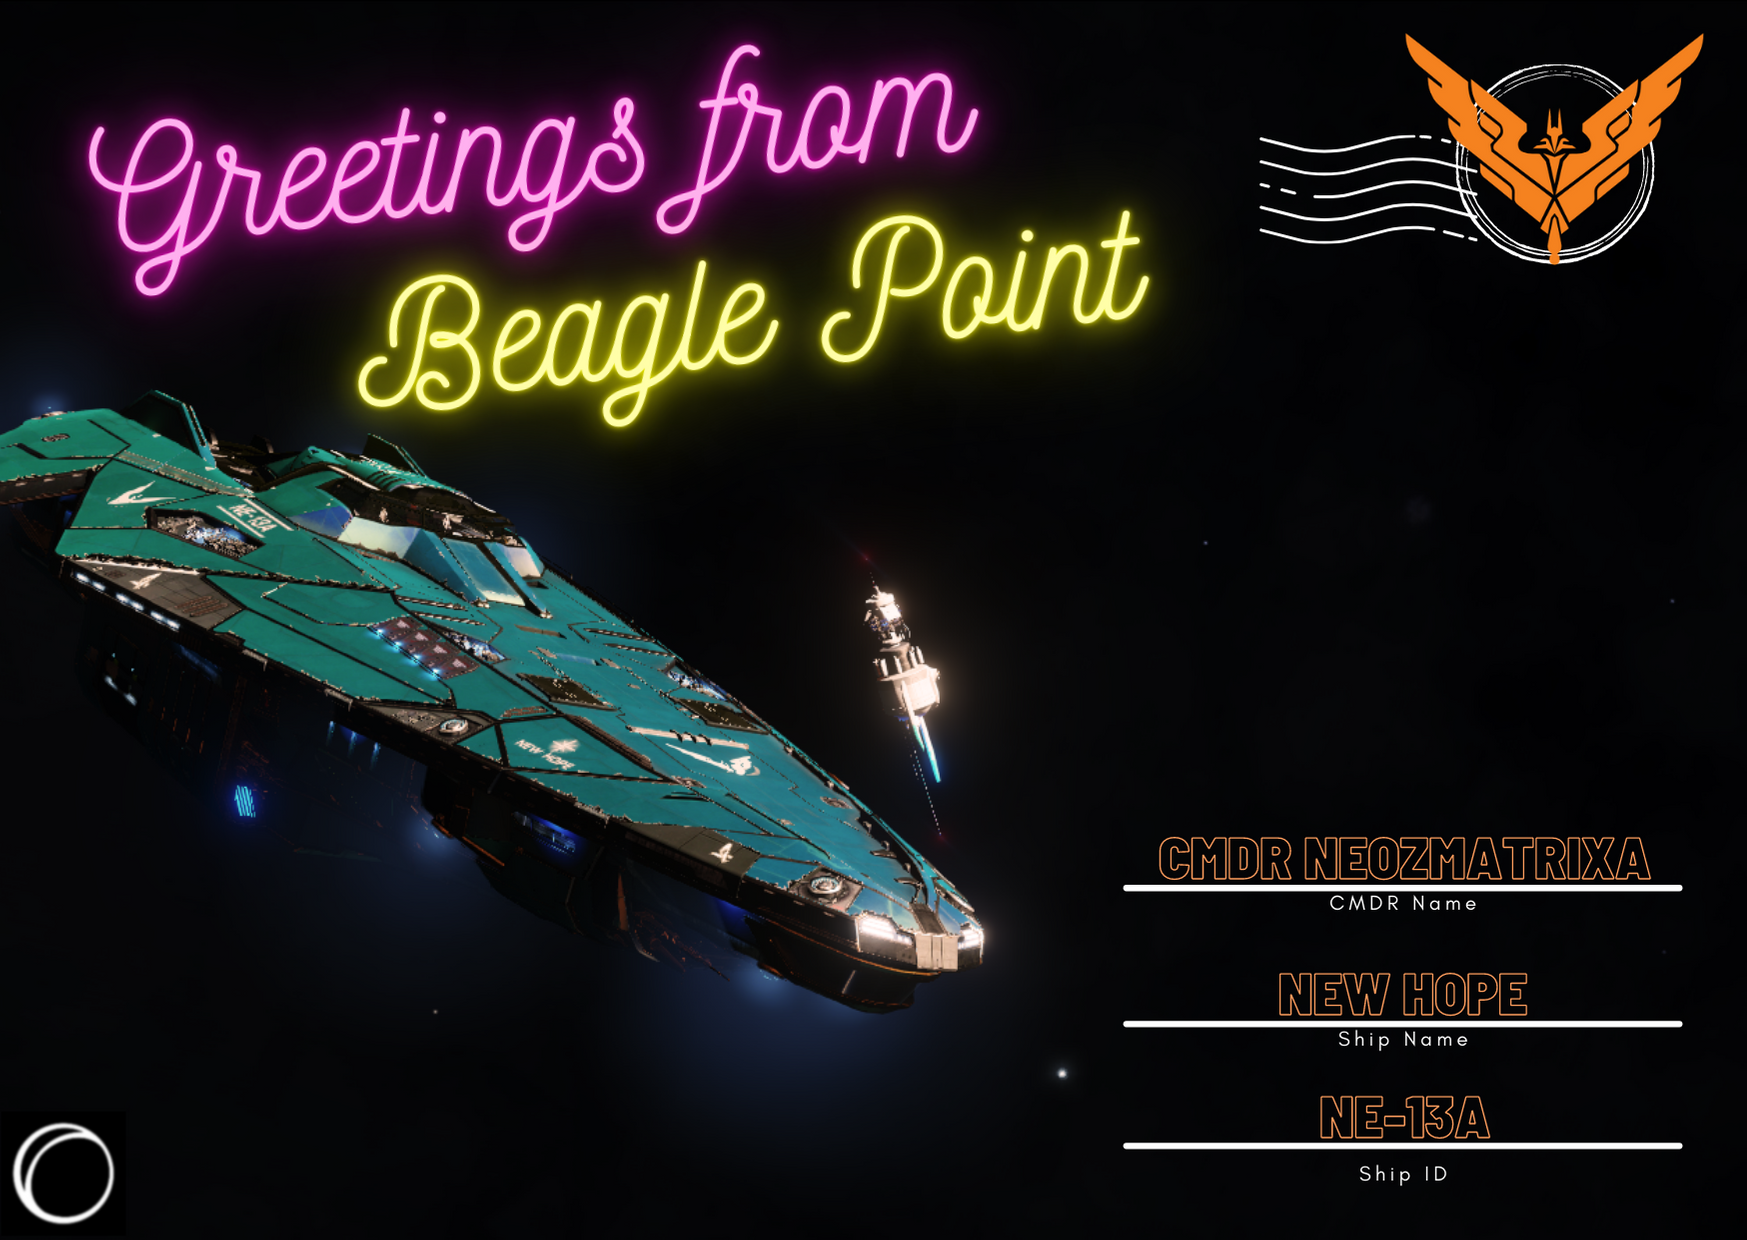 Greetings from Beagle Point